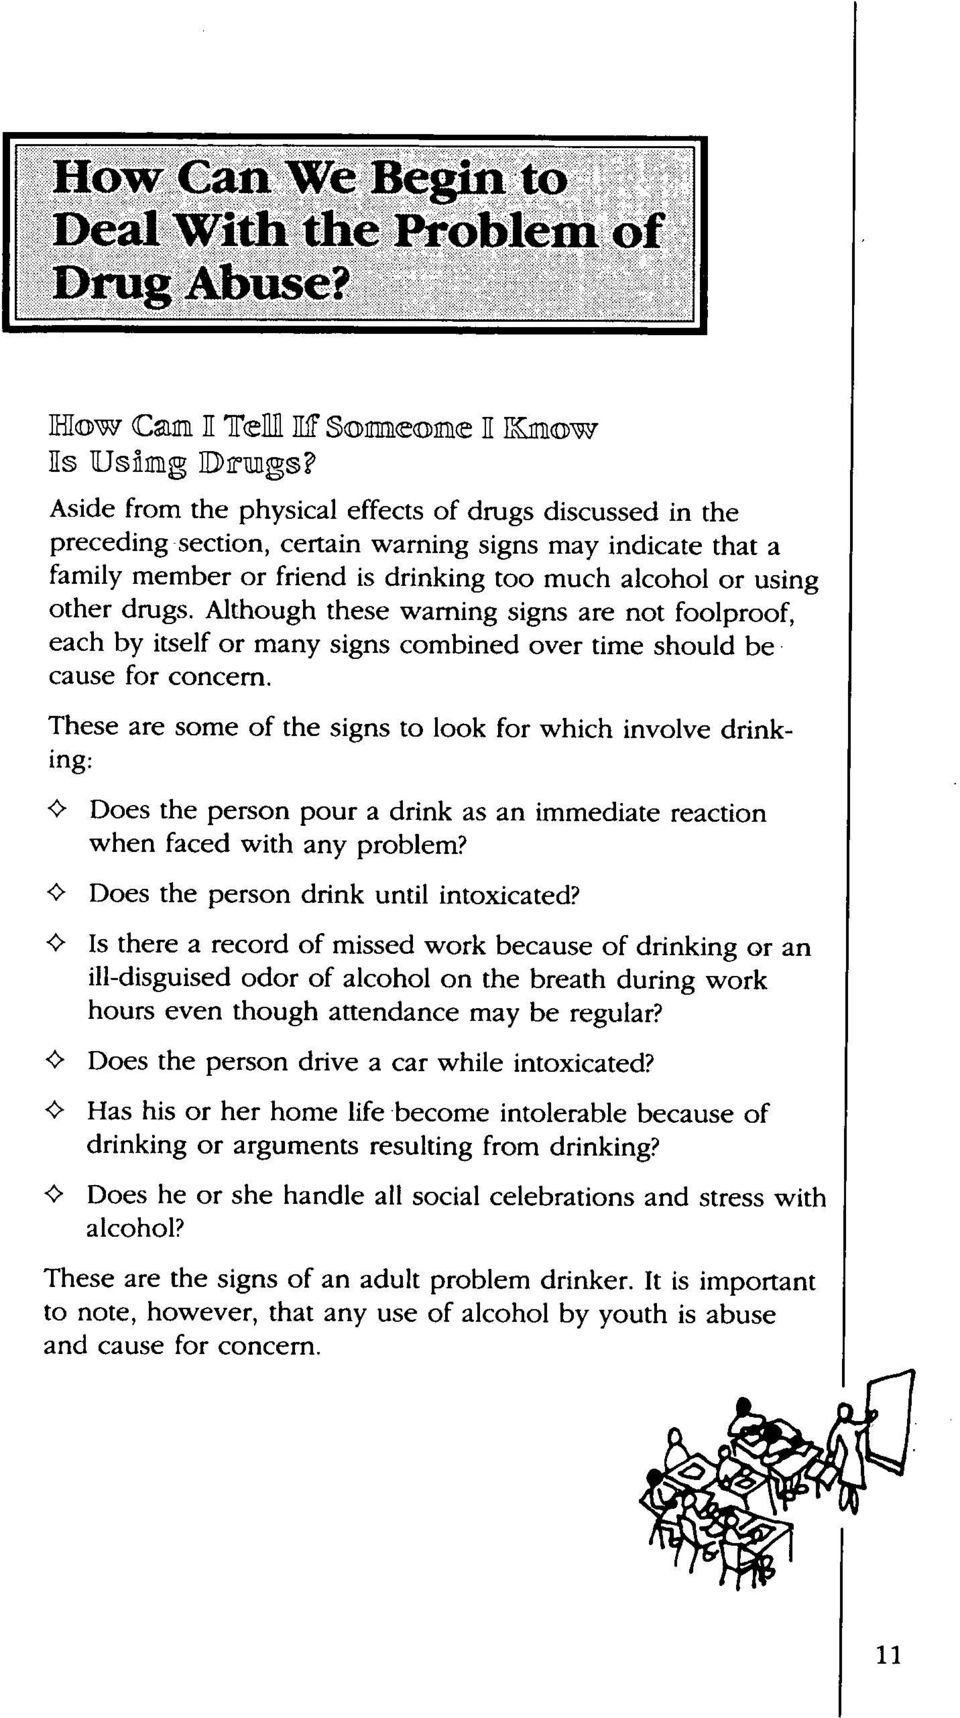 "These are some of the signs to look for which involve drinking: ' "" Does the person pour a drink as an immediate reaction when faced with any problem? <> Does the person drink until intoxicated?"